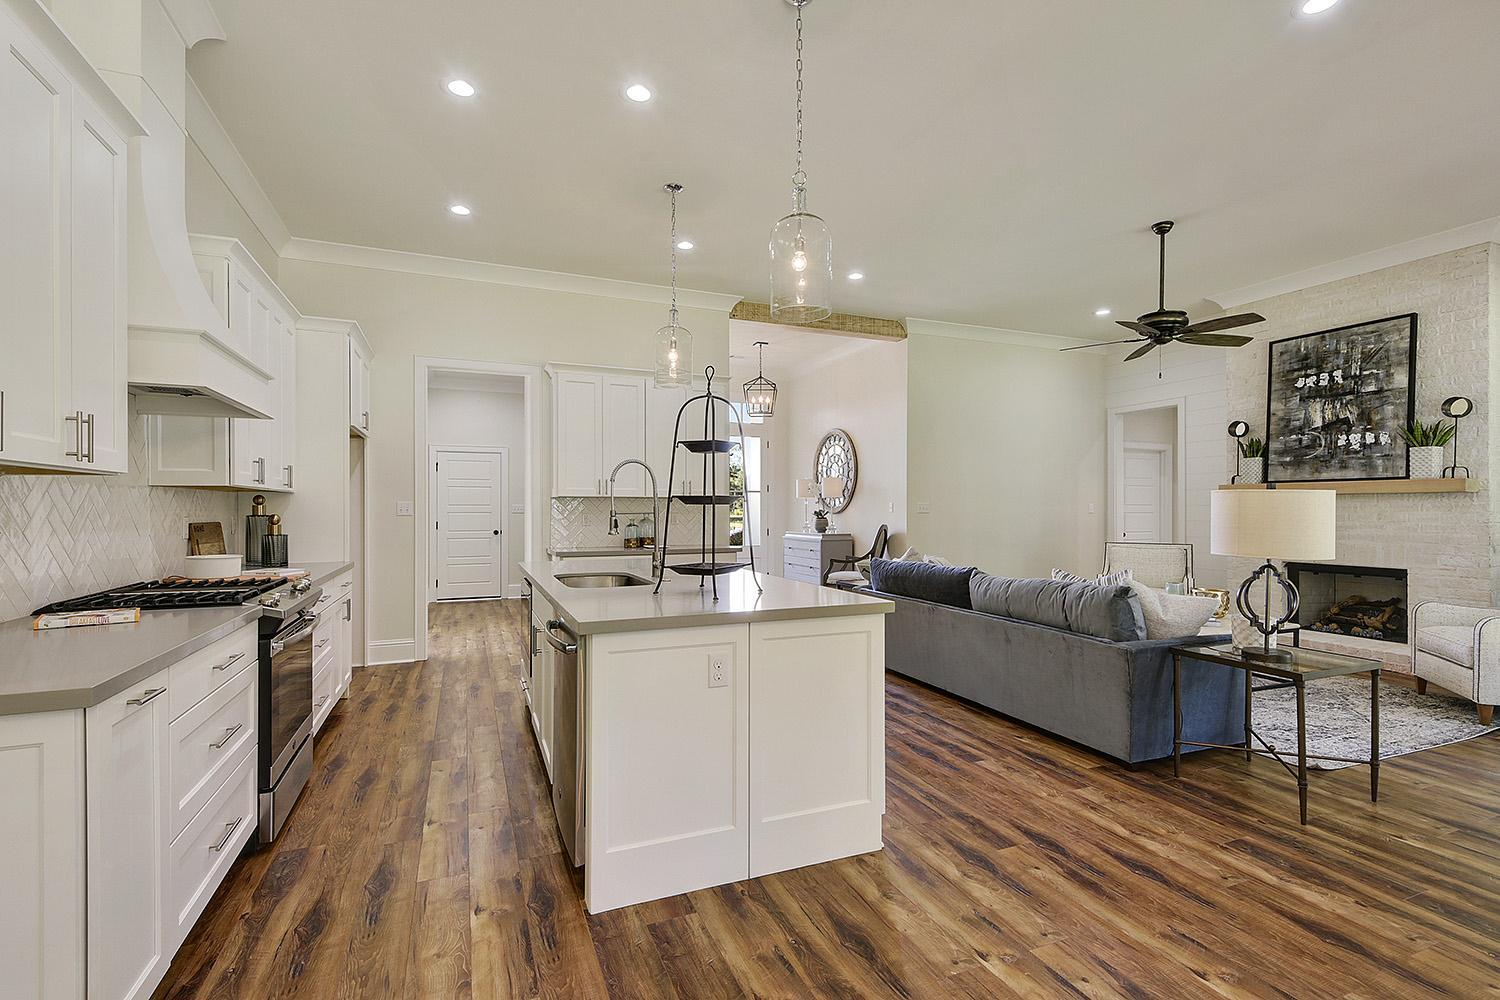 Kitchen featured in the Alexandre By Highland Homes in New Orleans, LA